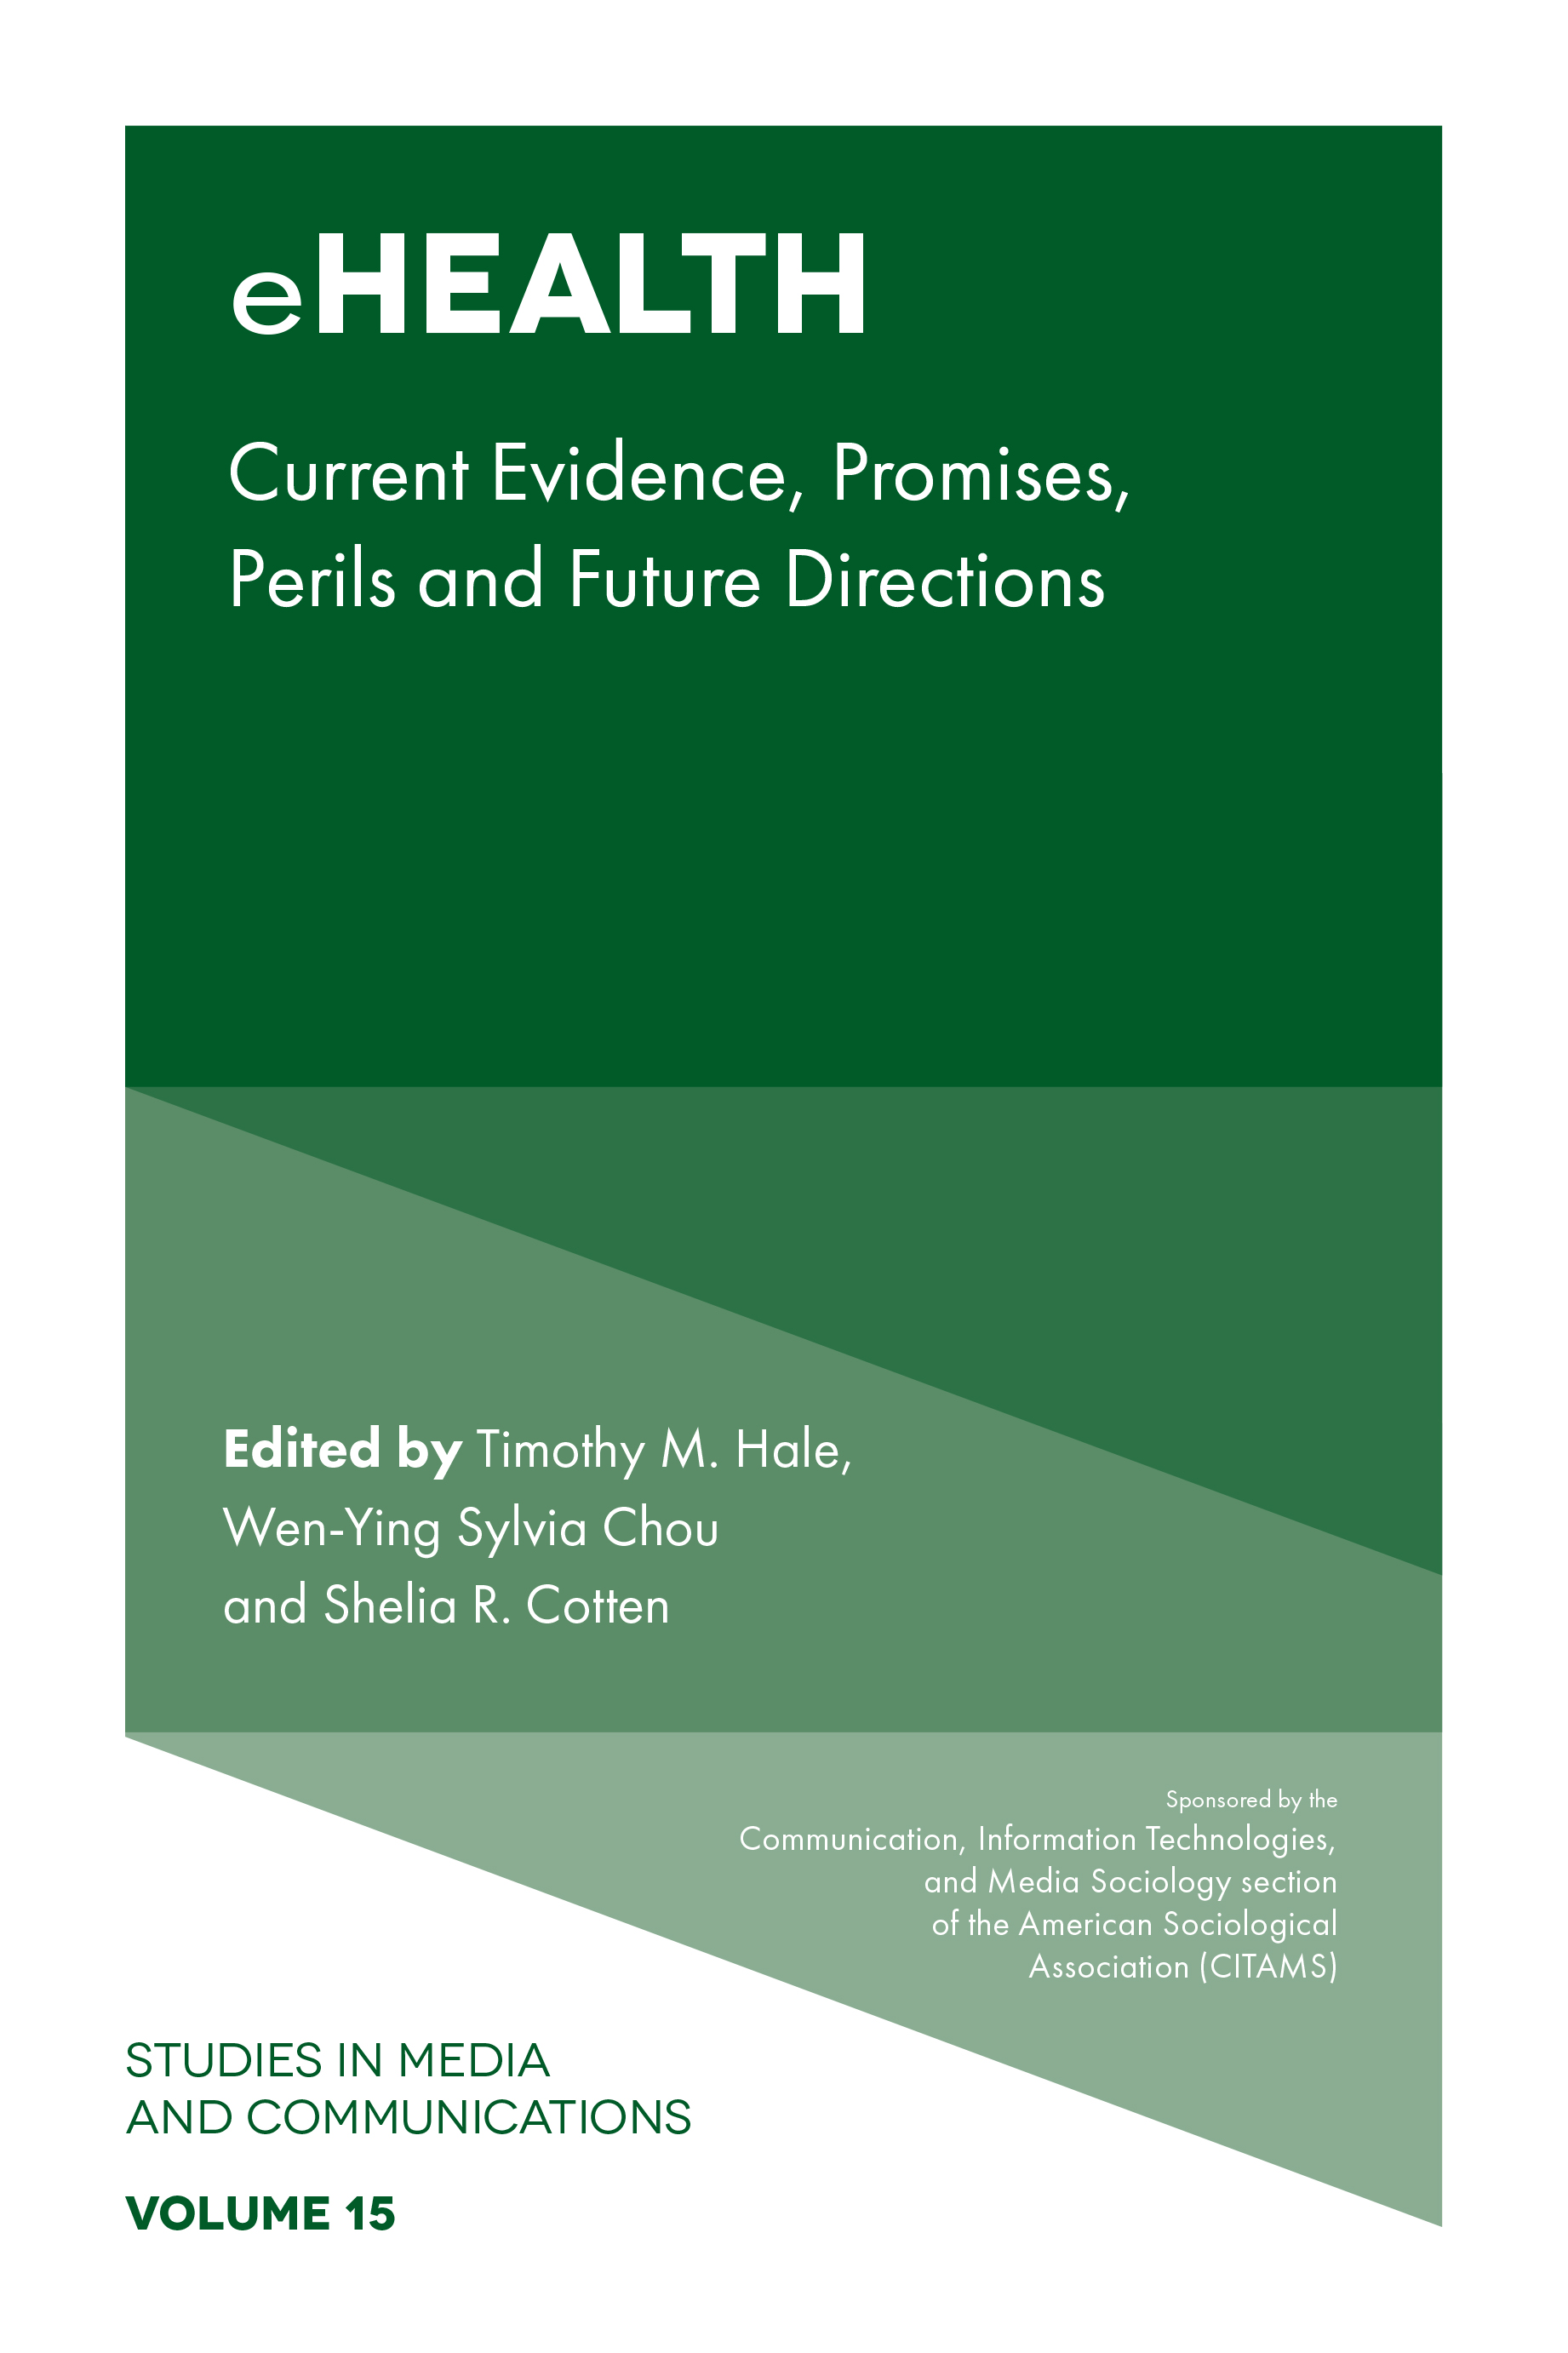 Book cover for eHealth:  Current Evidence, Promises, Perils, and Future Directions a book by Timothy M. Hale, Wen-Ying Sylvia Chou, Shelia R. Cotten